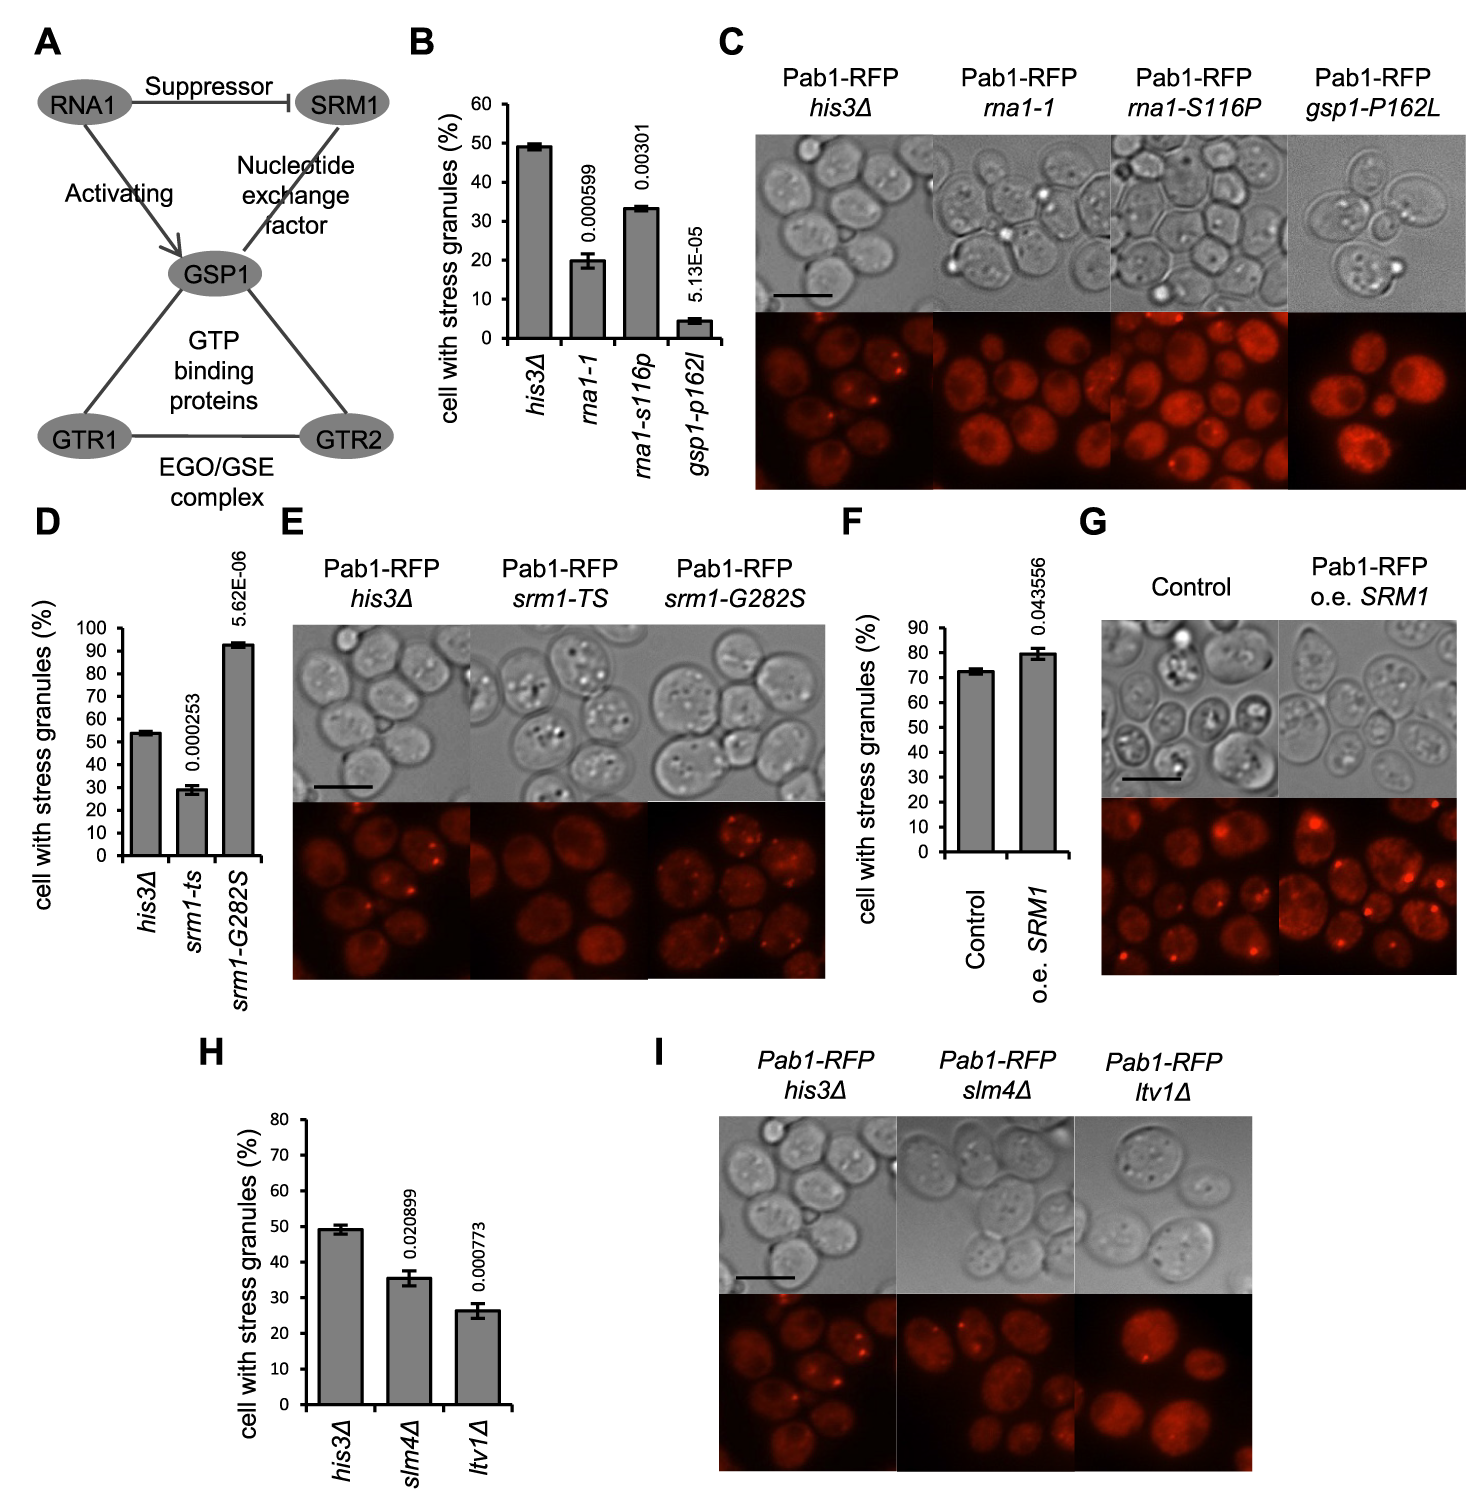 Mutants defective in control of the Ran GTPase homolog have a deregulated SG stress response.